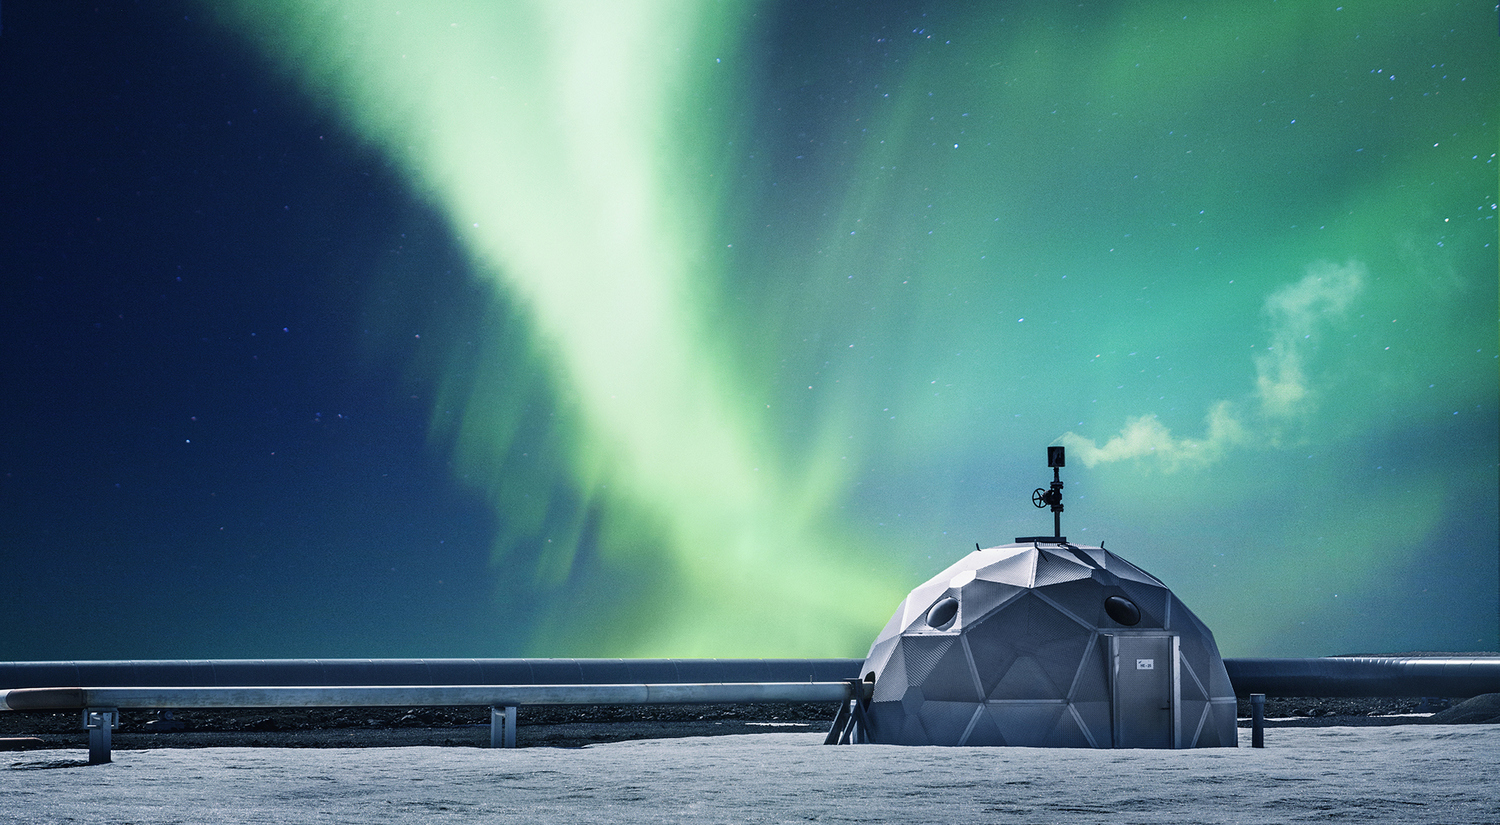 Geothermal Energy Exhibition & Northern lights